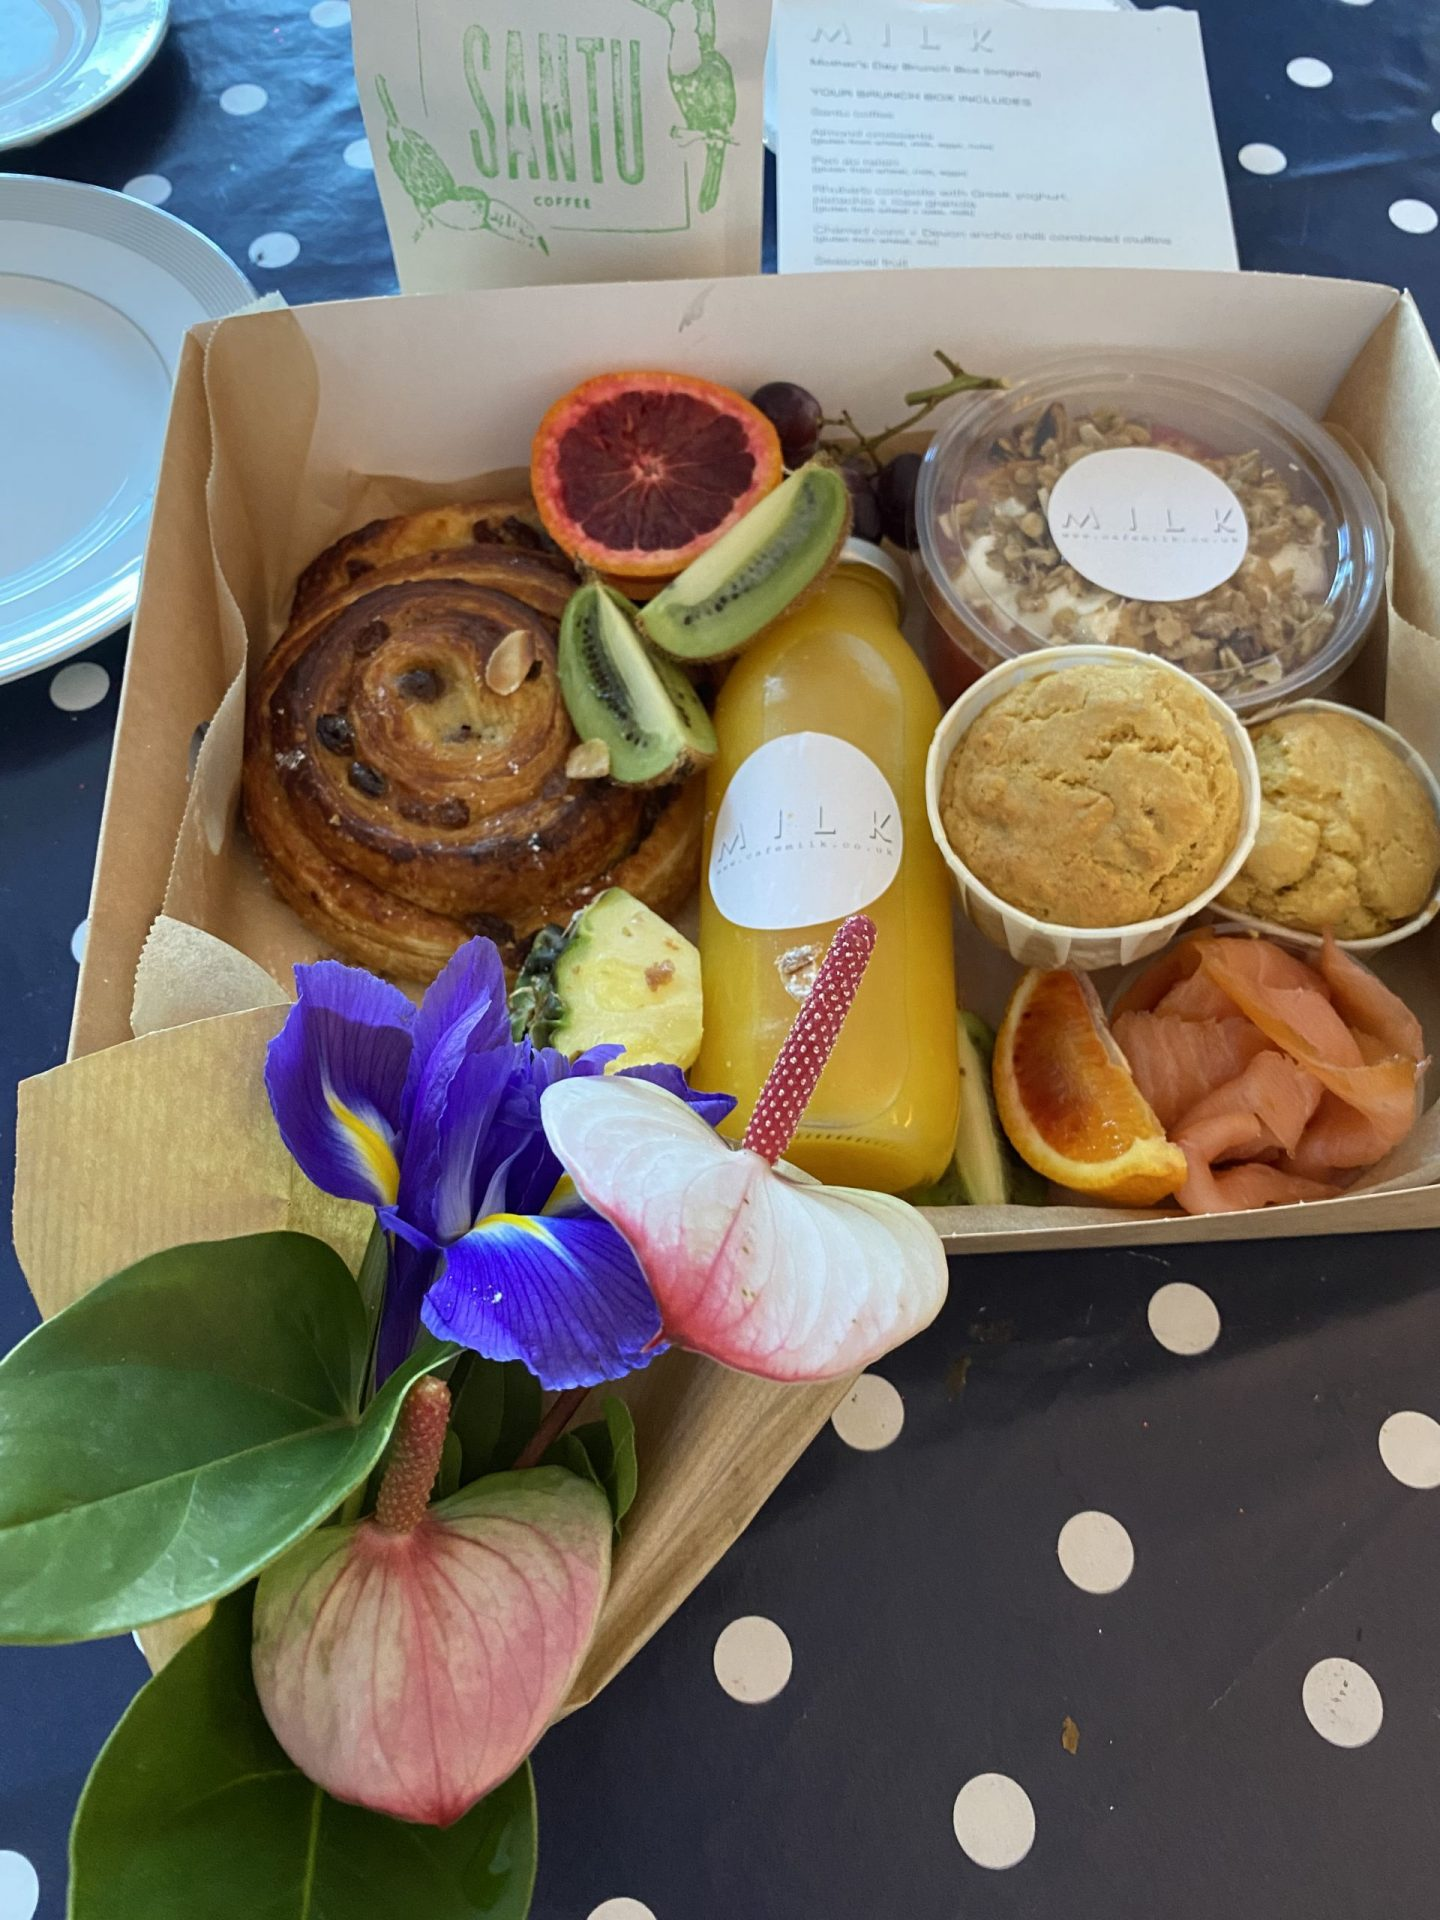 A super tasty brunch at home – The cafe milk launch their Mother's Day Hampers